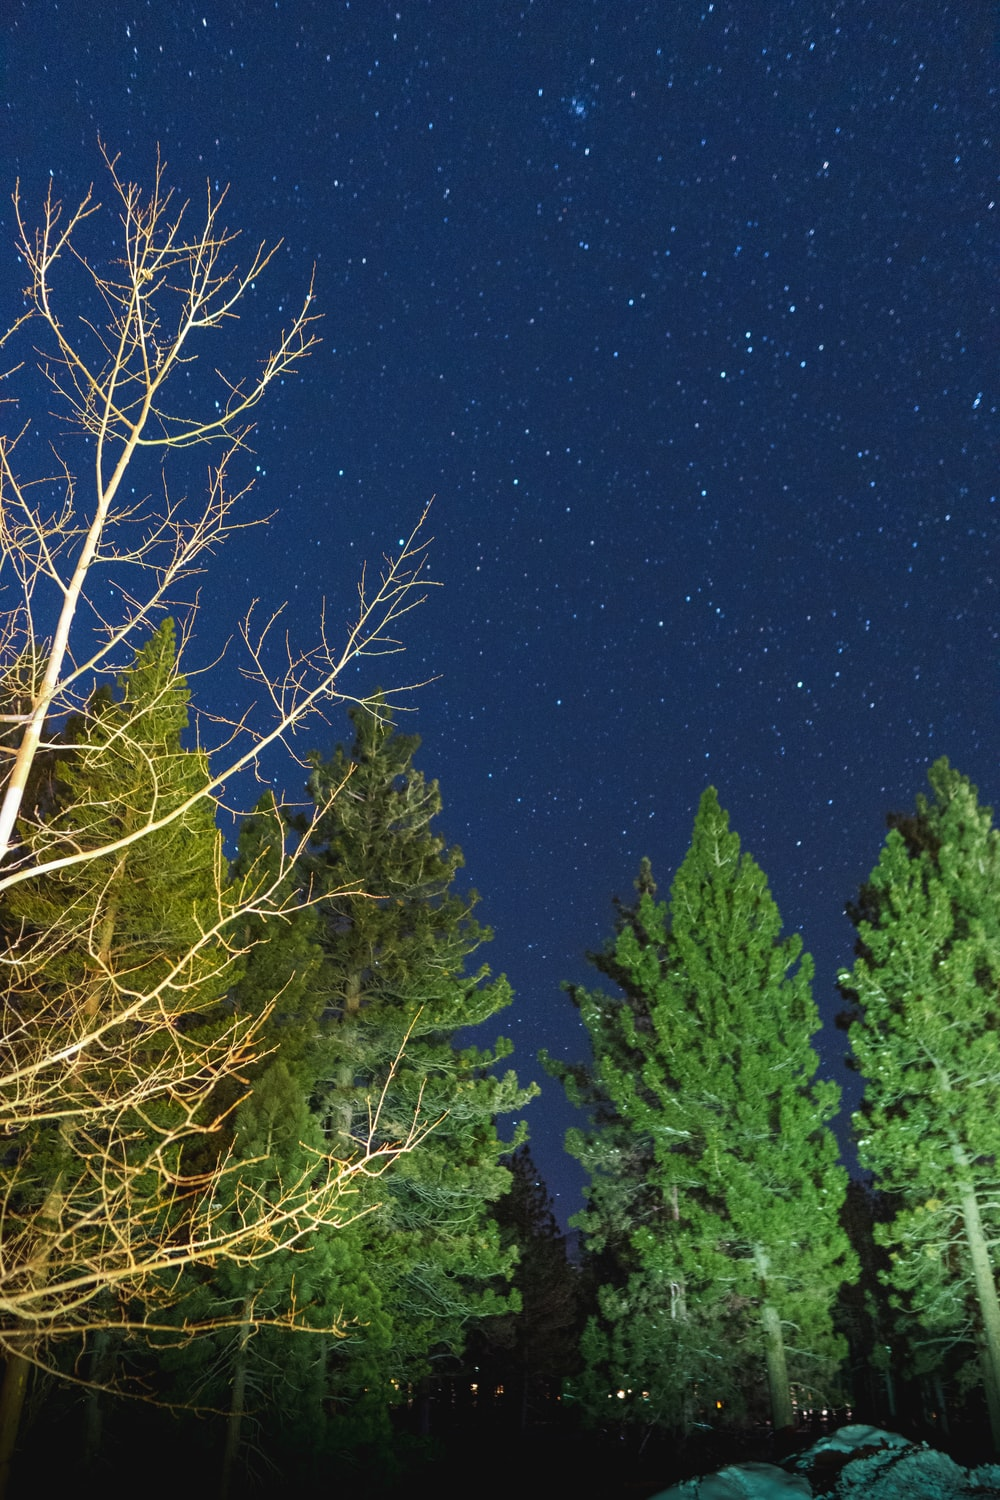 green pine trees under blue sky during night time